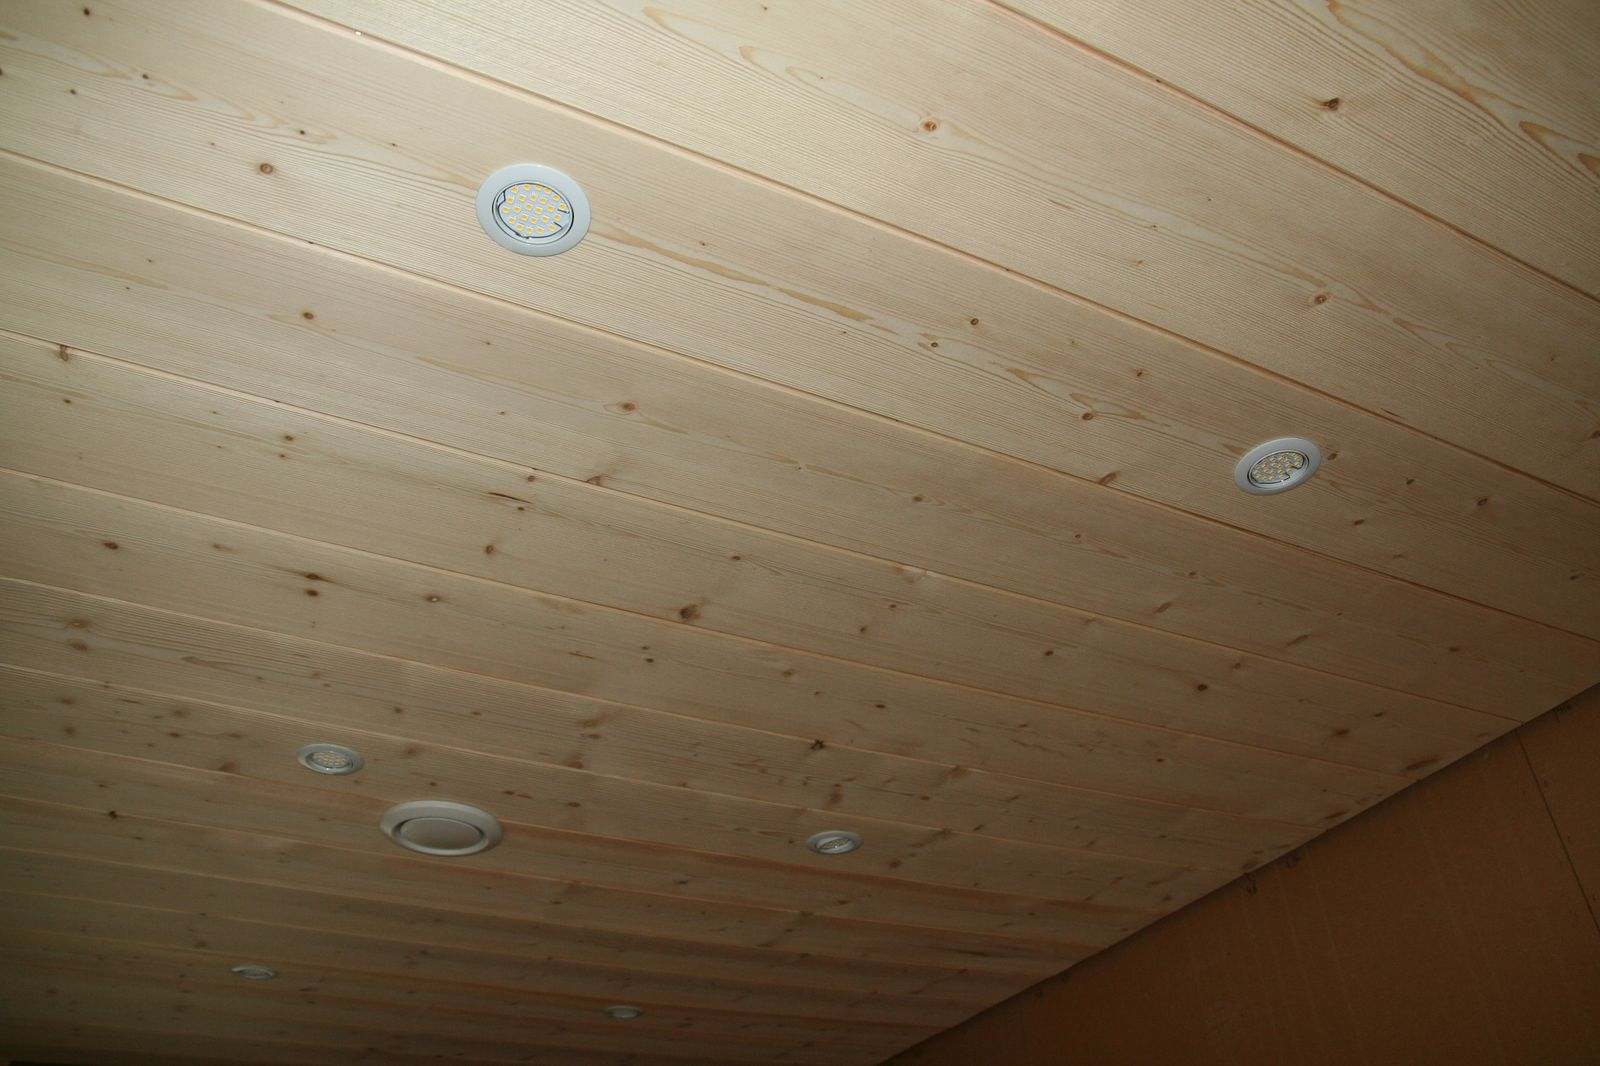 Pose d un plafond lambris pvc travaux devis en ligne for Pose d un lambris bois au plafond